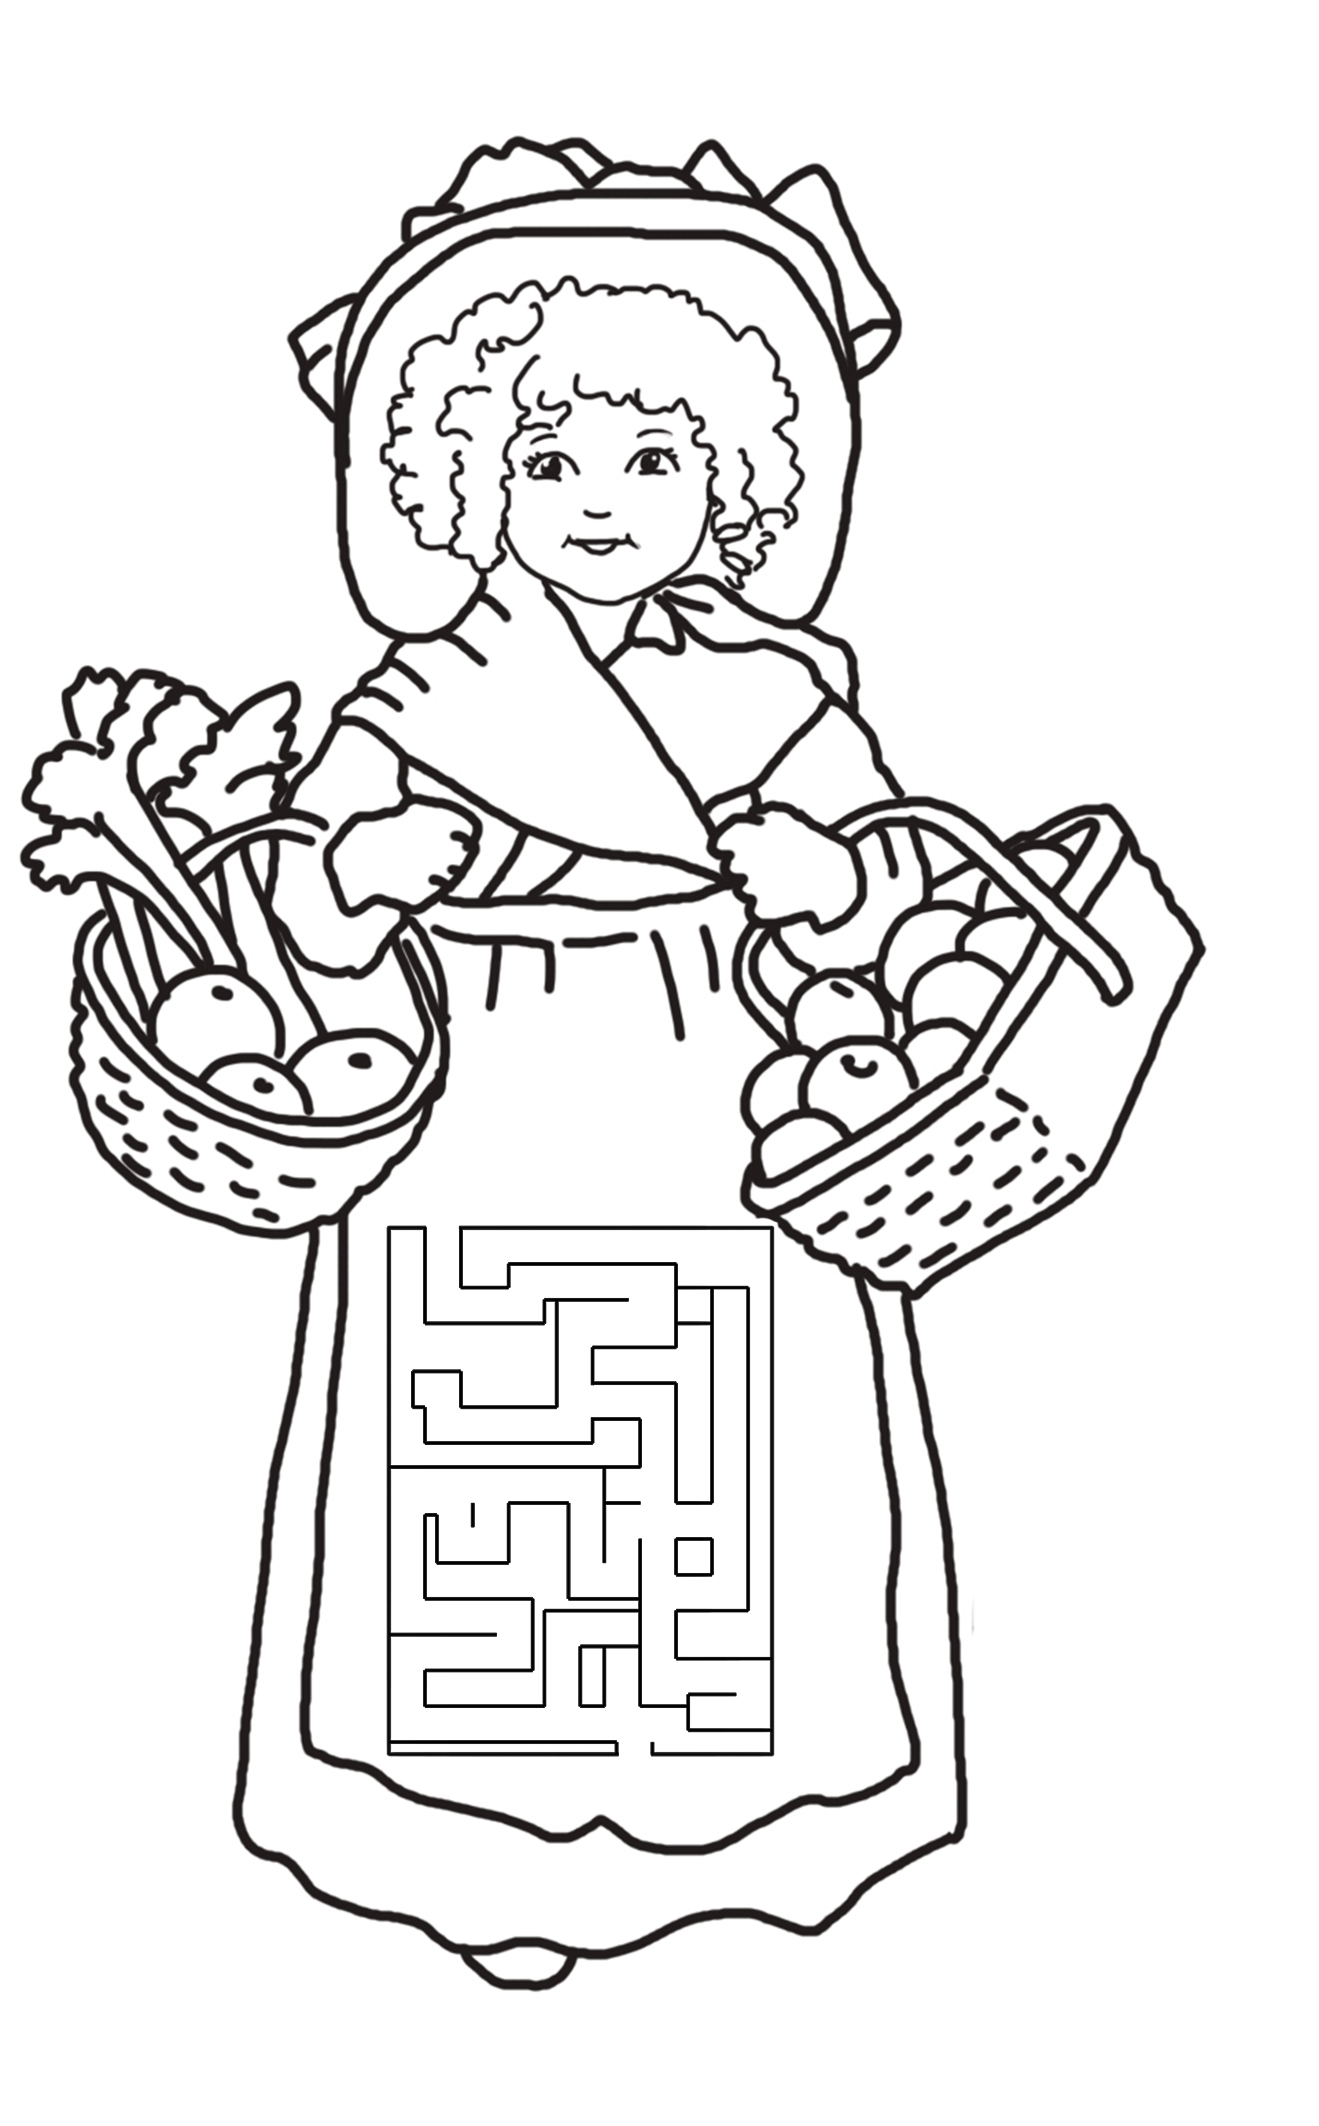 maze for thanksgiving girl with fruit